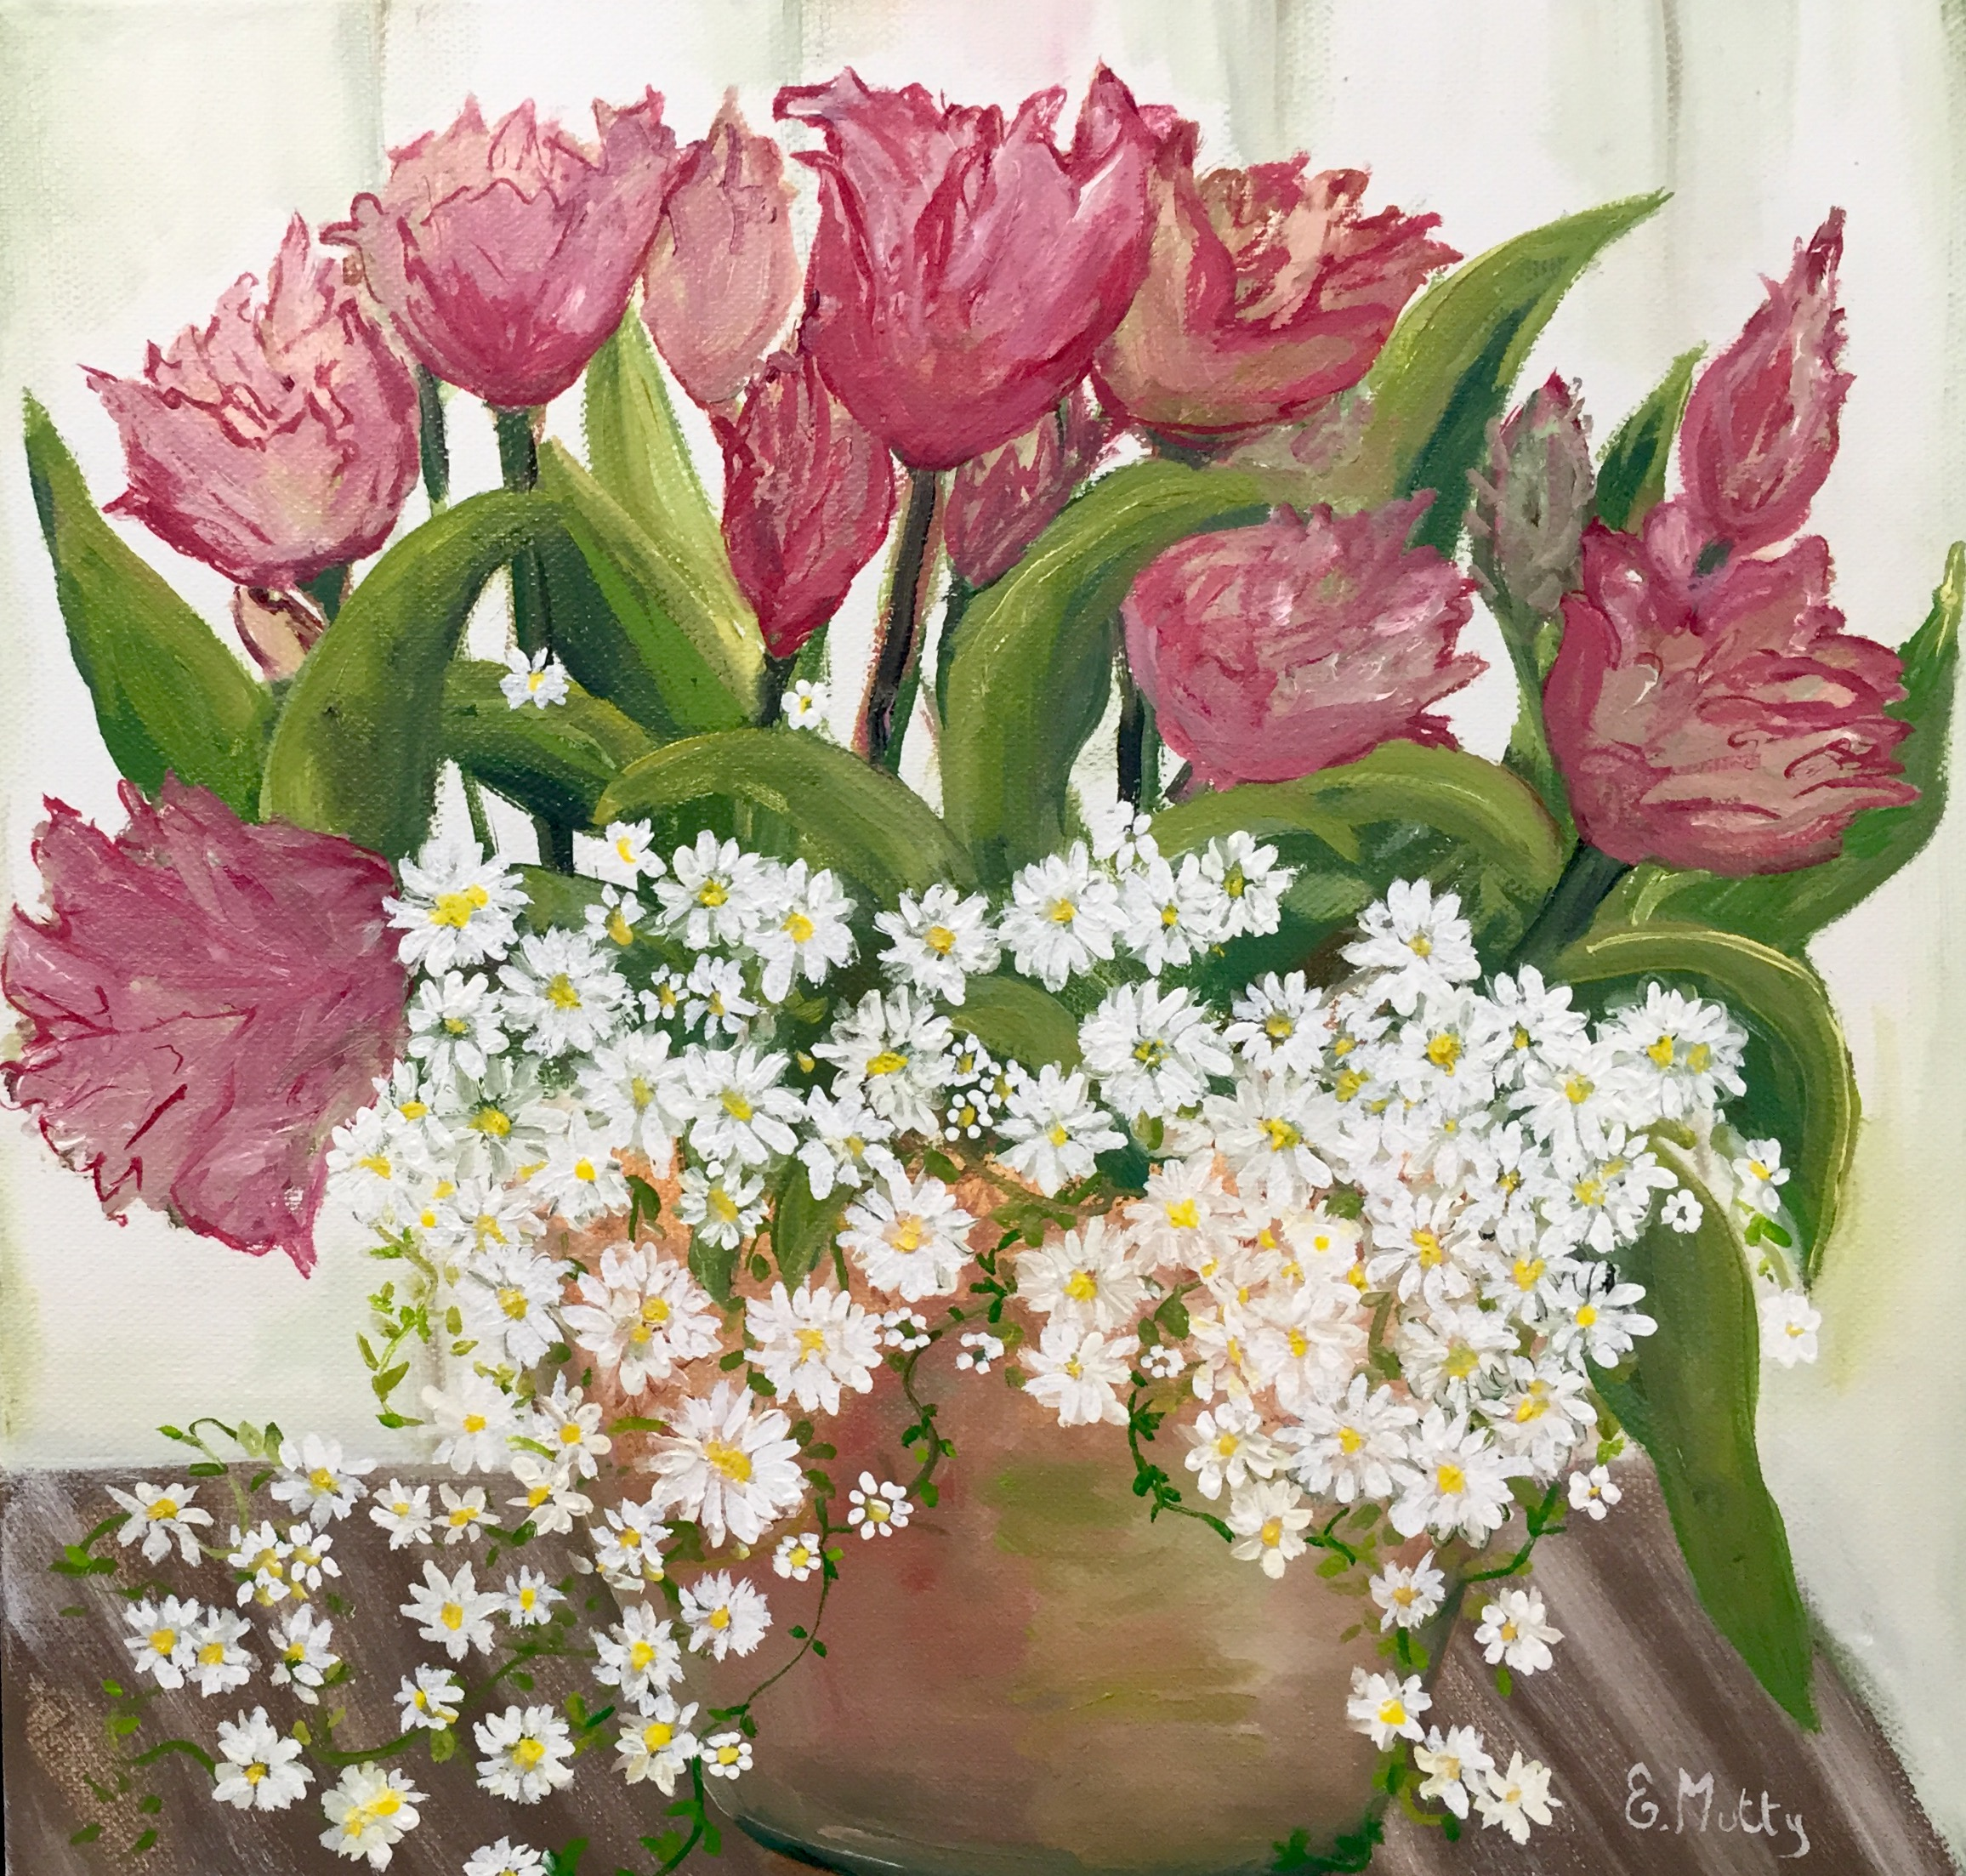 Tulips and Daisies by Elisabetta Mutty at the Saffron Walden Gallery